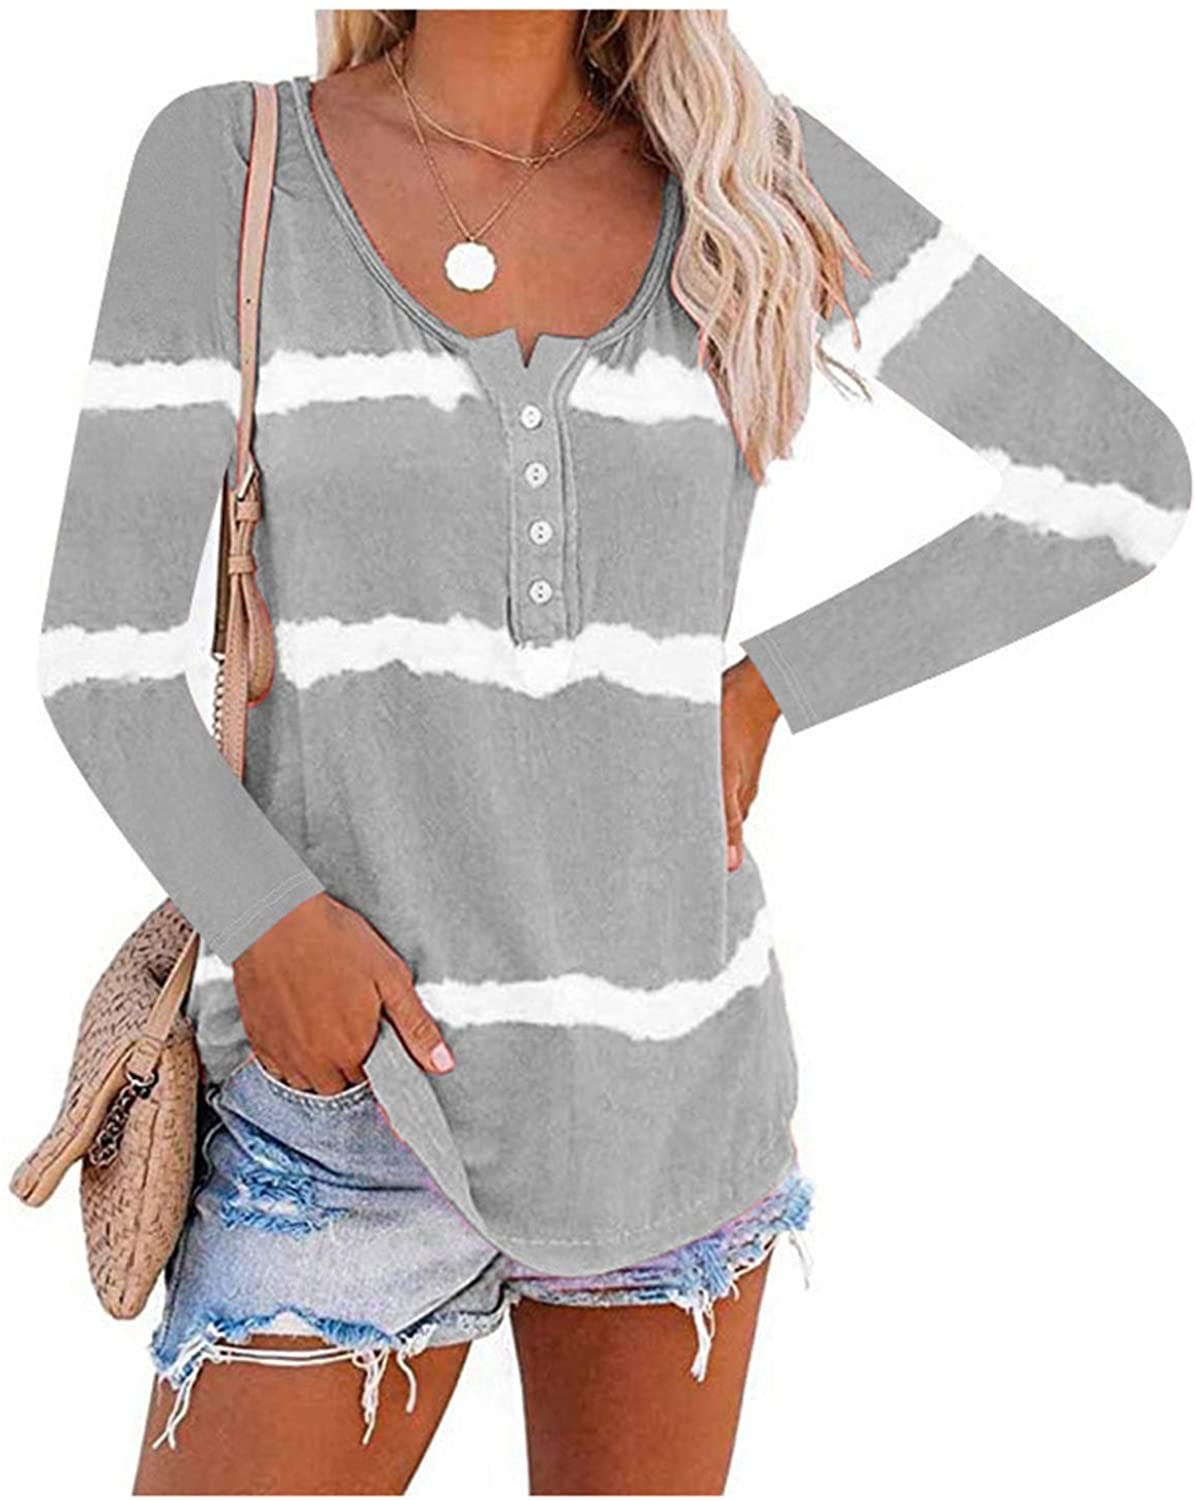 N/P Women's Tie Dye Printed Long Sleeve Shirts Stripes Loose Tunic Tops Button Blouse Shirt